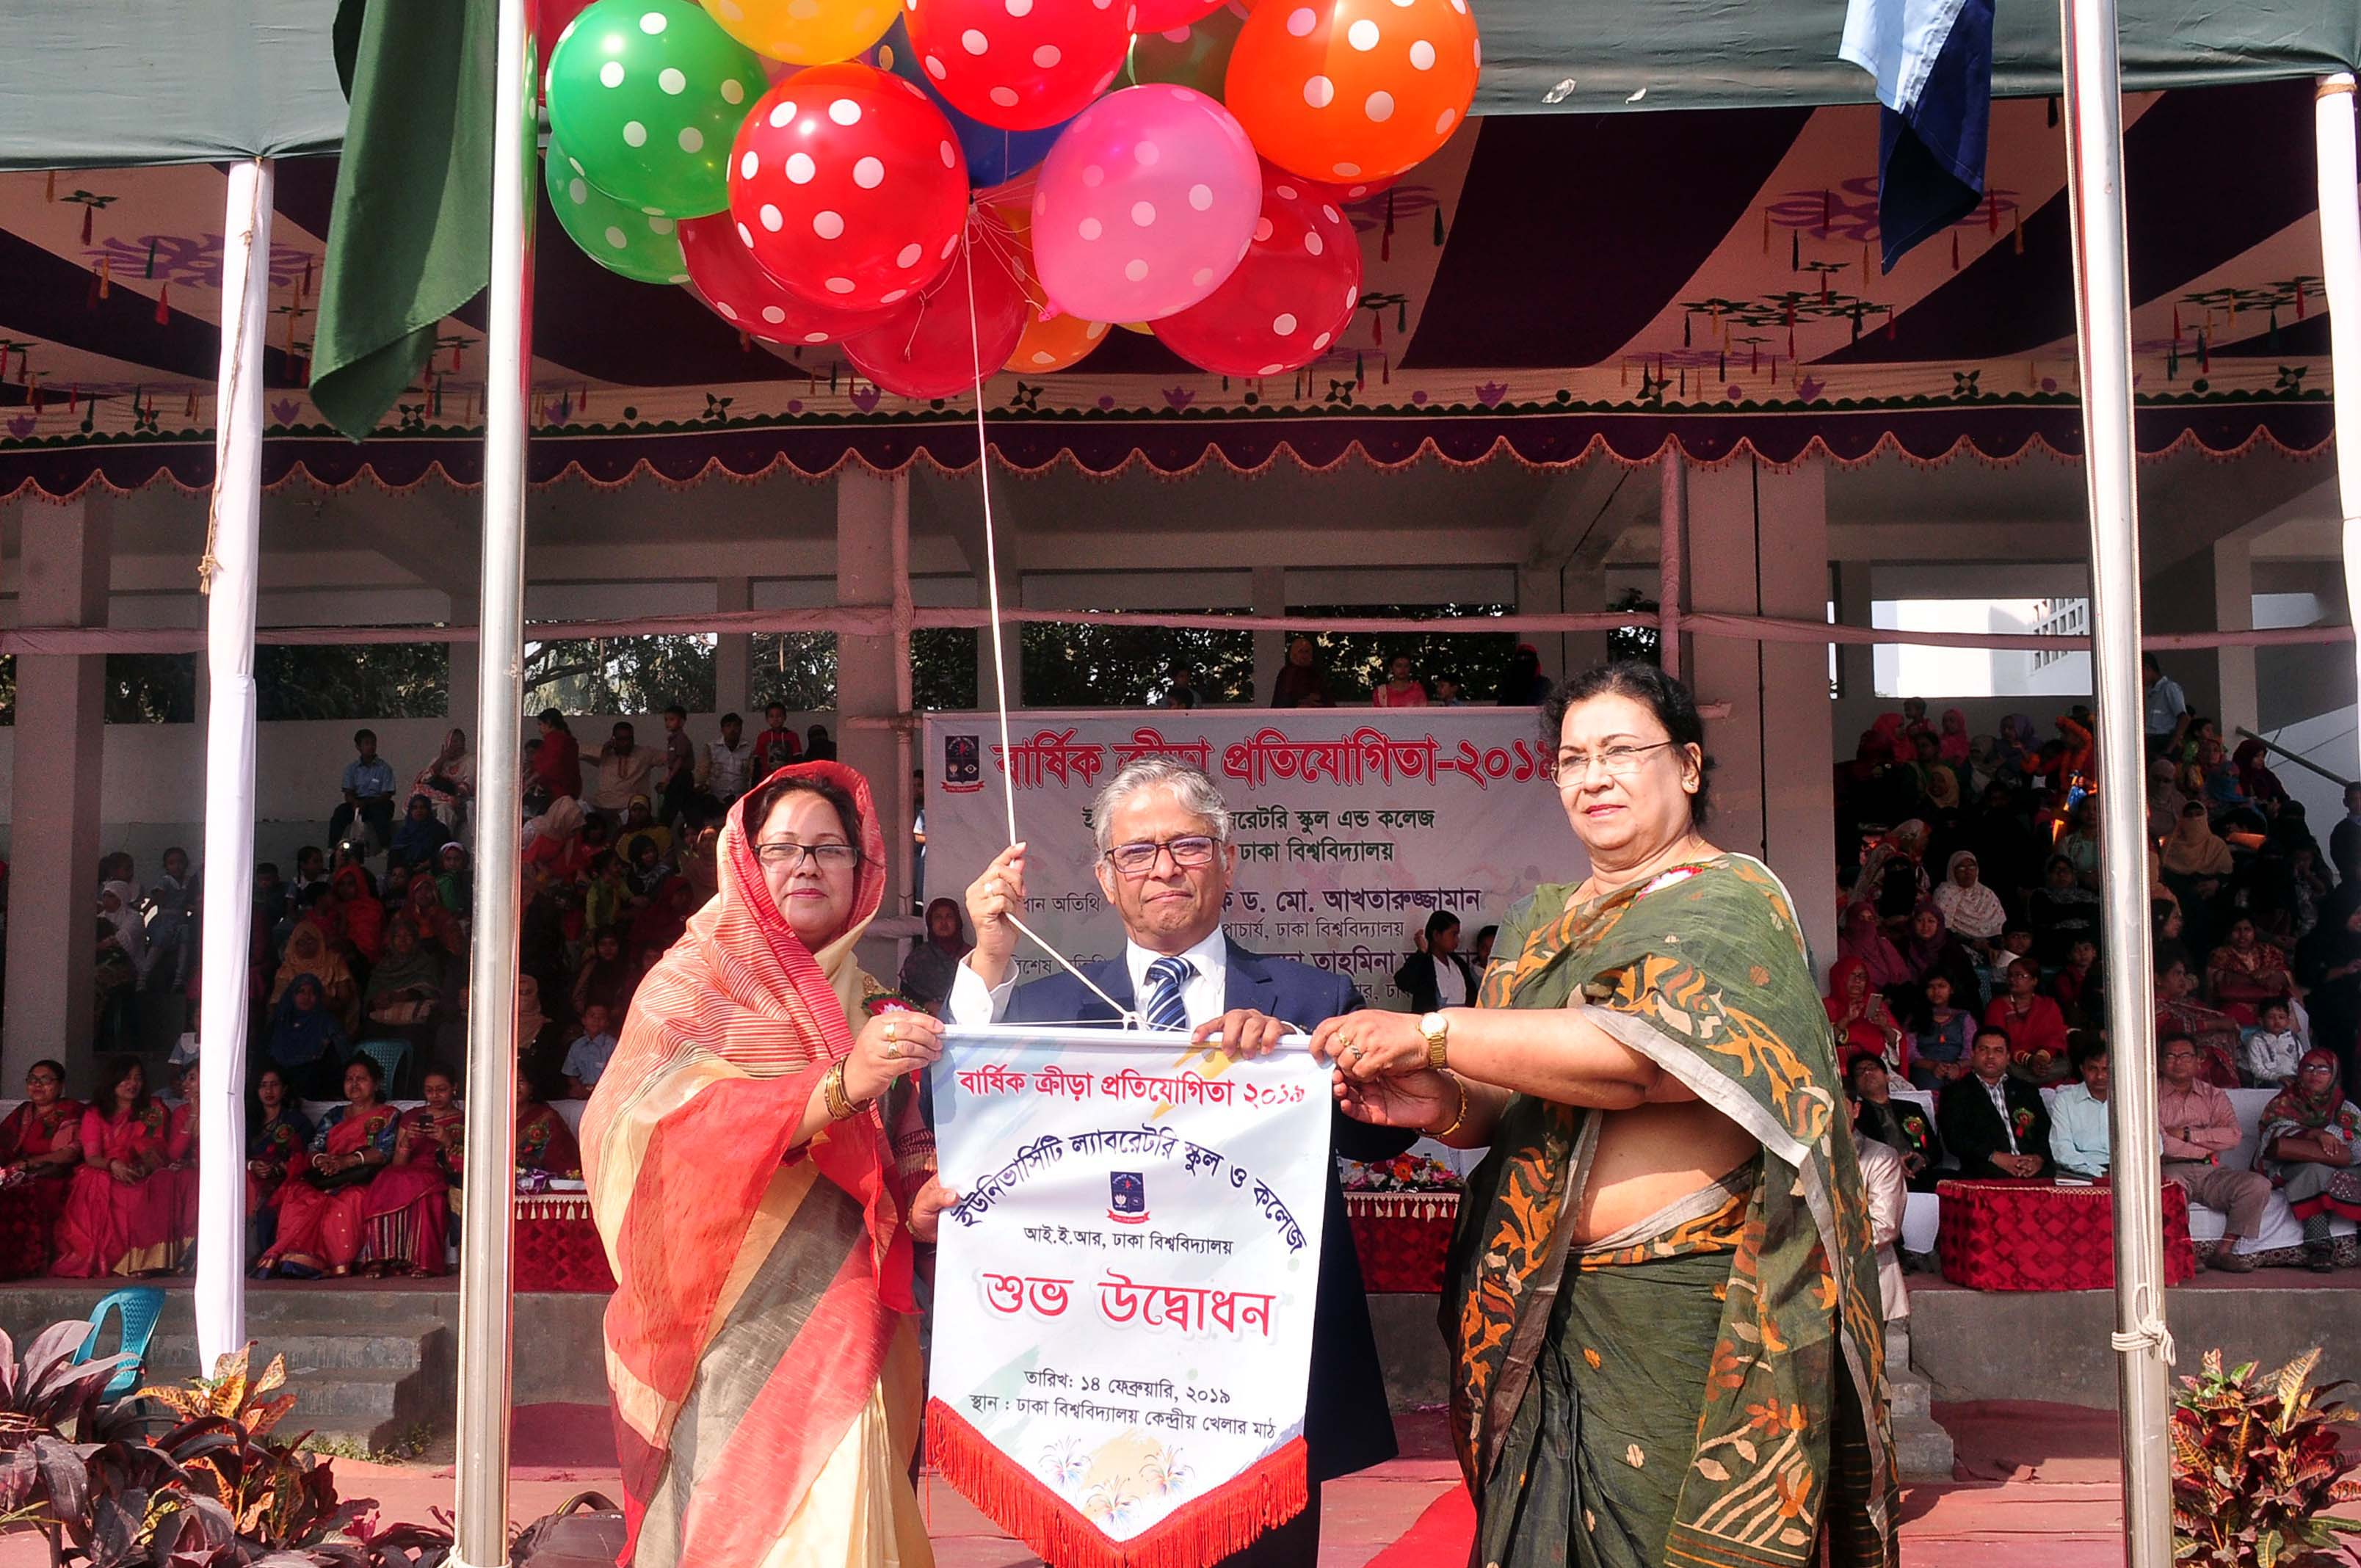 Vice-Chancellor of Dhaka University (DU) Professor Dr Md Akhtaruzzaman      inaugurating the Annual Sports Competition of University Laboratory School & College by releasing the balloons as the chief guest at the Central Playground     of DU on Thursday.